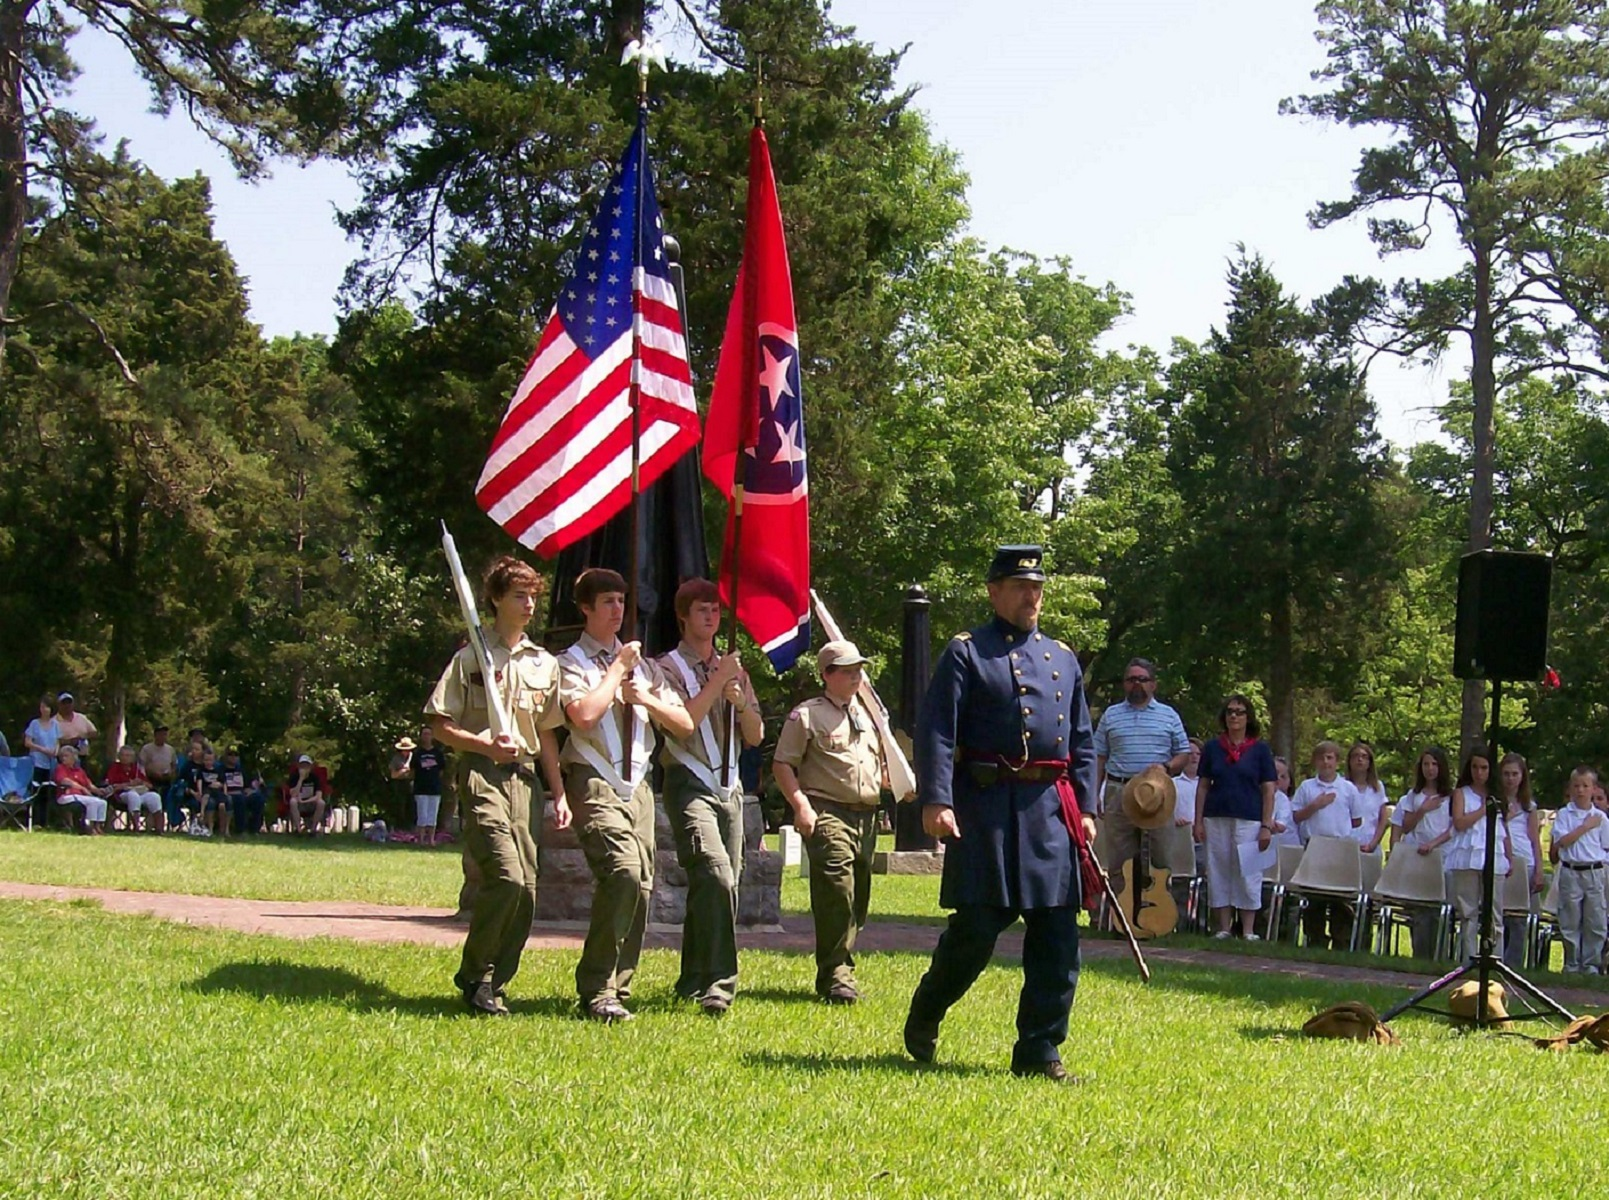 Memorial Day Ceremony in the Shiloh National Cemetery - Shiloh